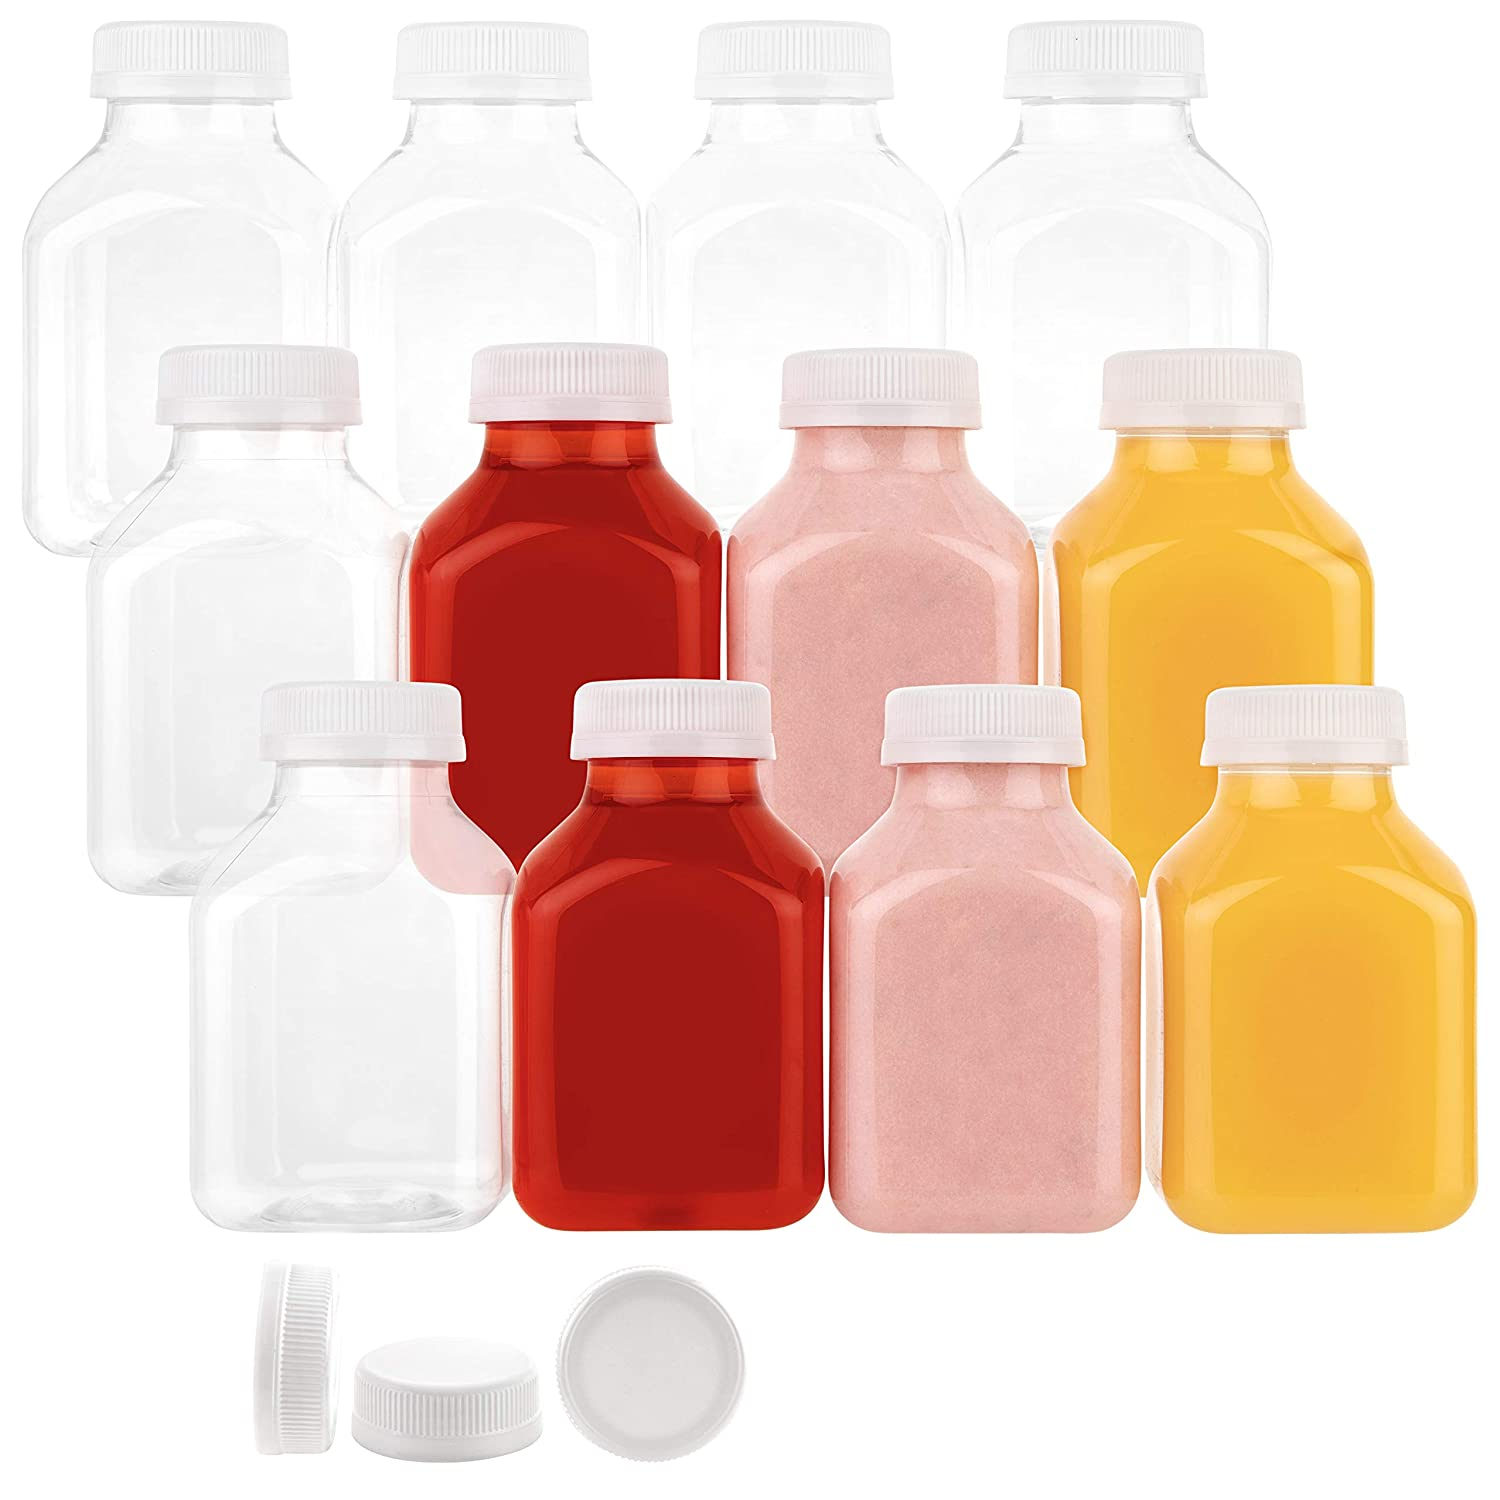 Disposable Plastic Juice Bottles-8 Oz with Lids | 24 Pack | for Water, Orange Apple Lemon Juicing, Smoothies, Milk, Reusable, BPA Free, Tamper-Proof Caps, Catering, Takeout